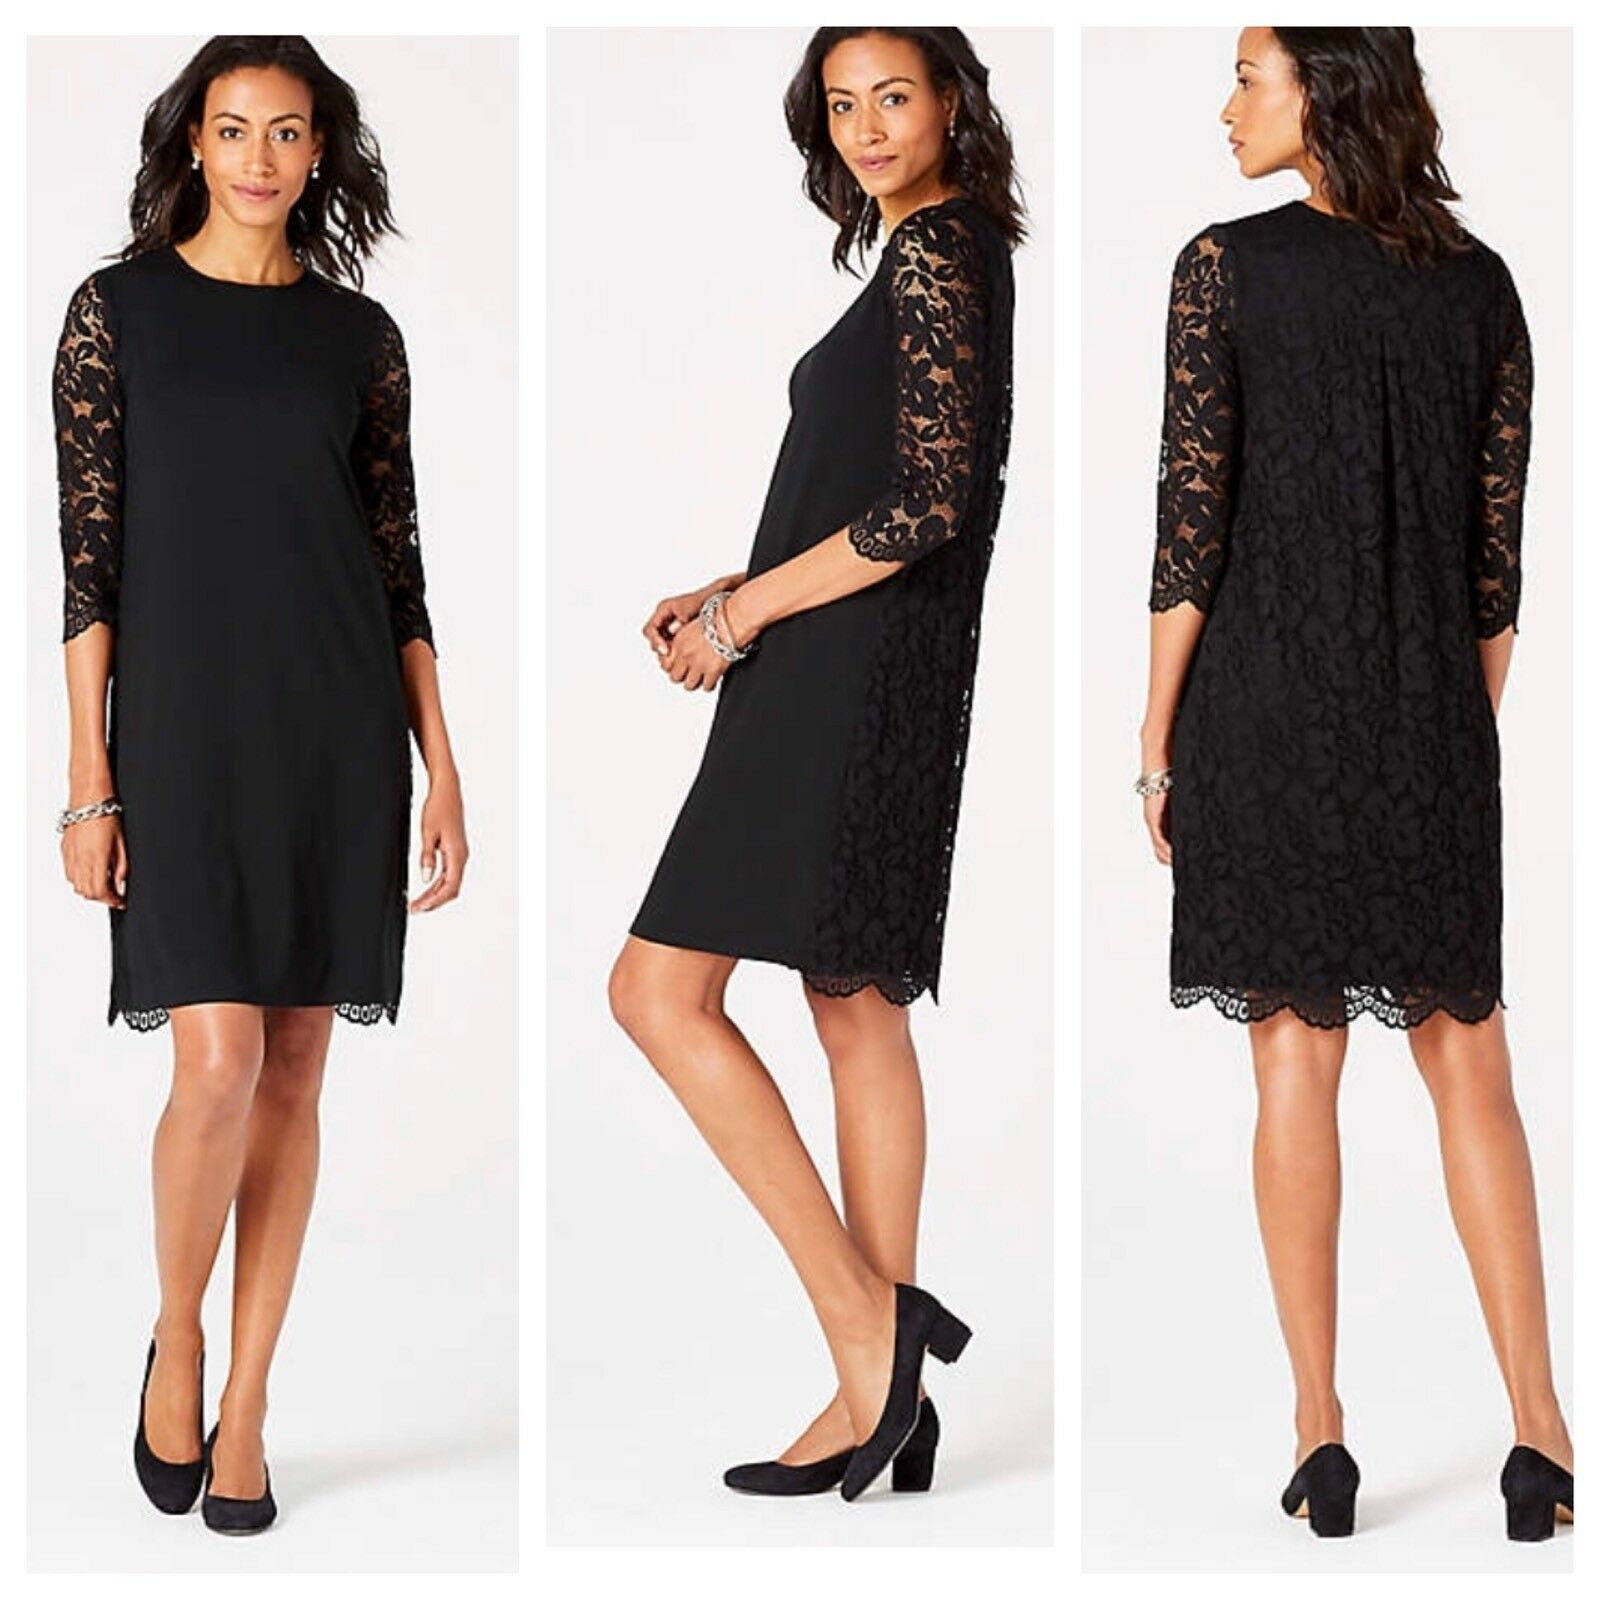 NWT J. Jill schwarz Lace Knit 3 4 Sleeve Dress Wearever Collection damen XS